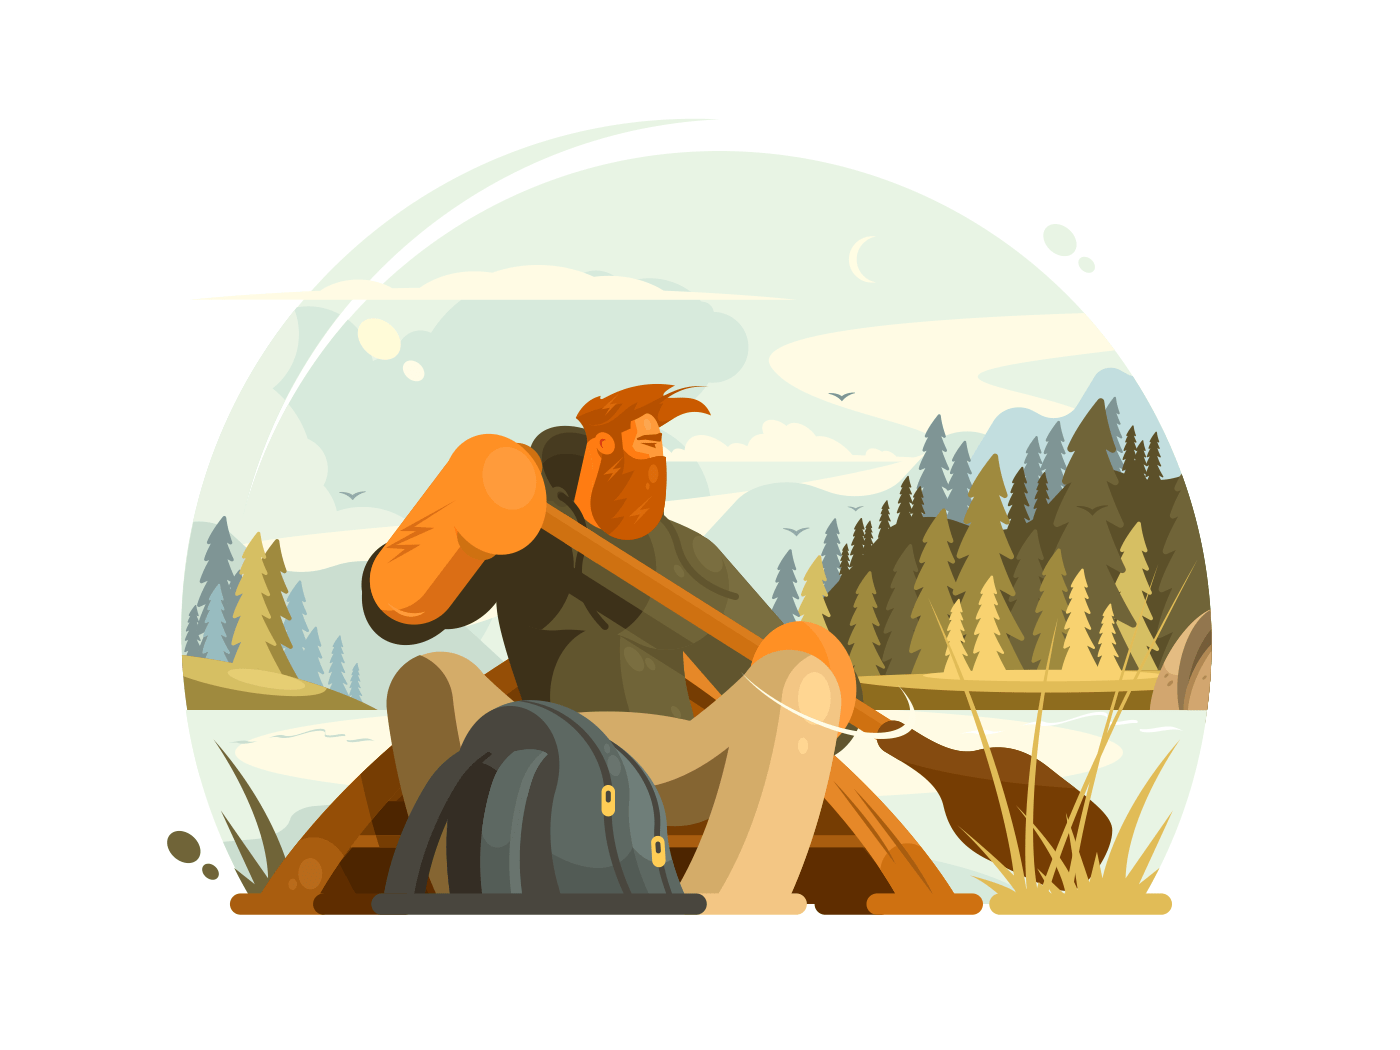 Bearded man in canoe illustration